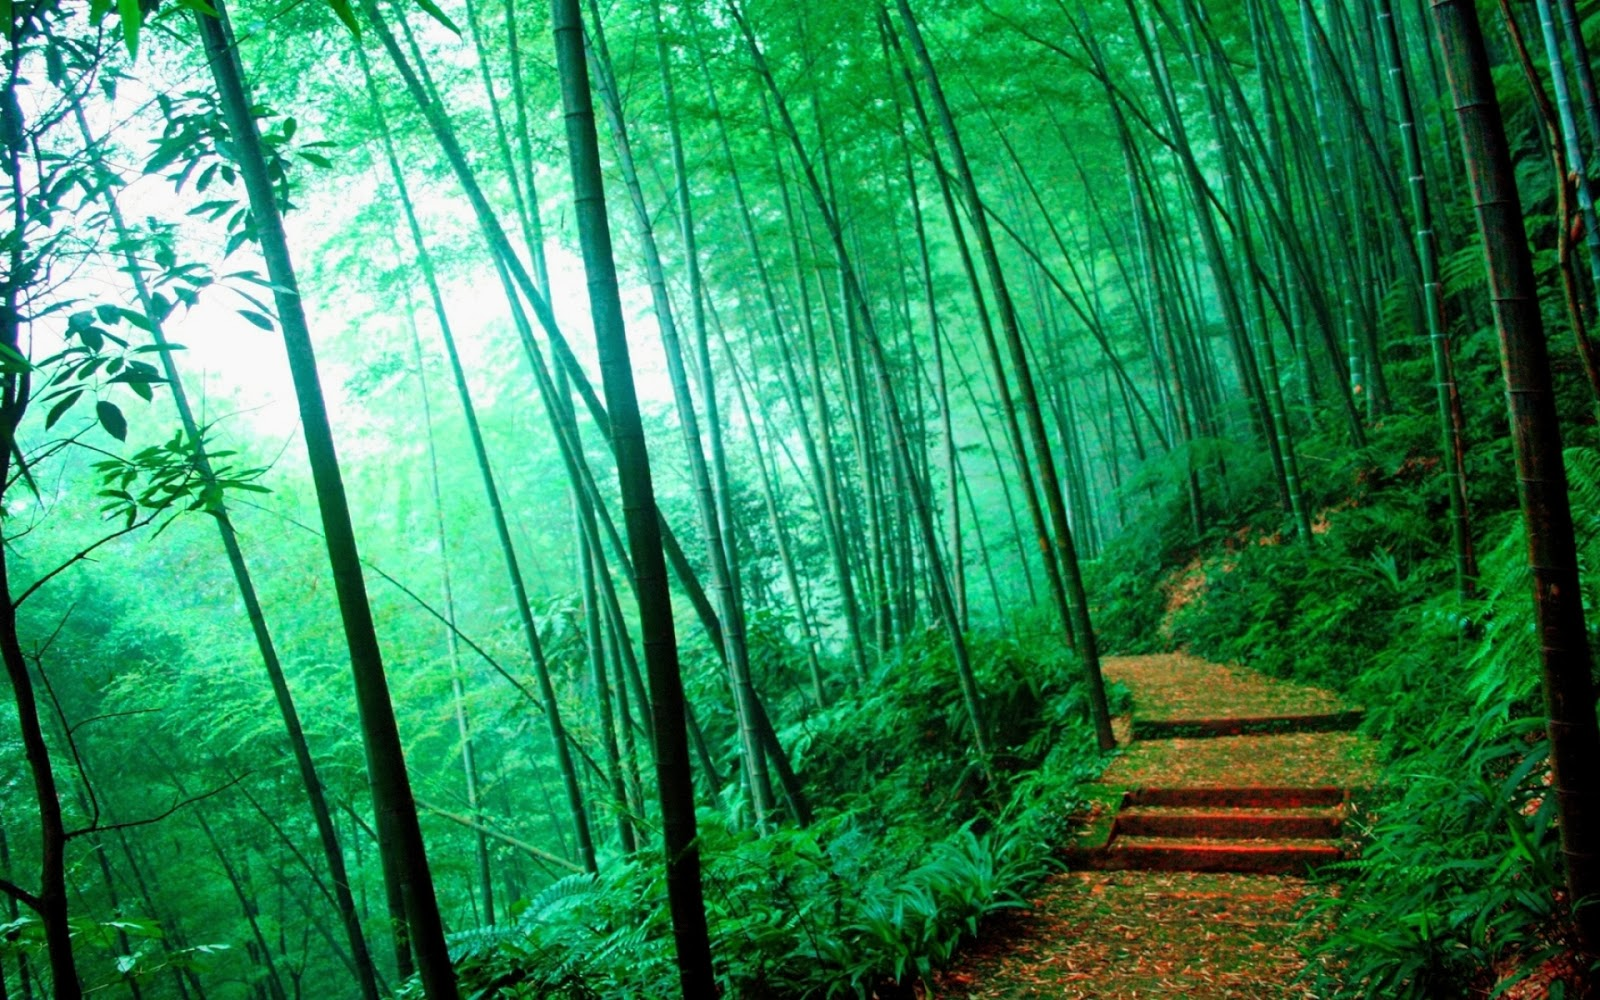 Forest 4k Quality Iphone Wallpaper: Bamboo Wallpapers Collections